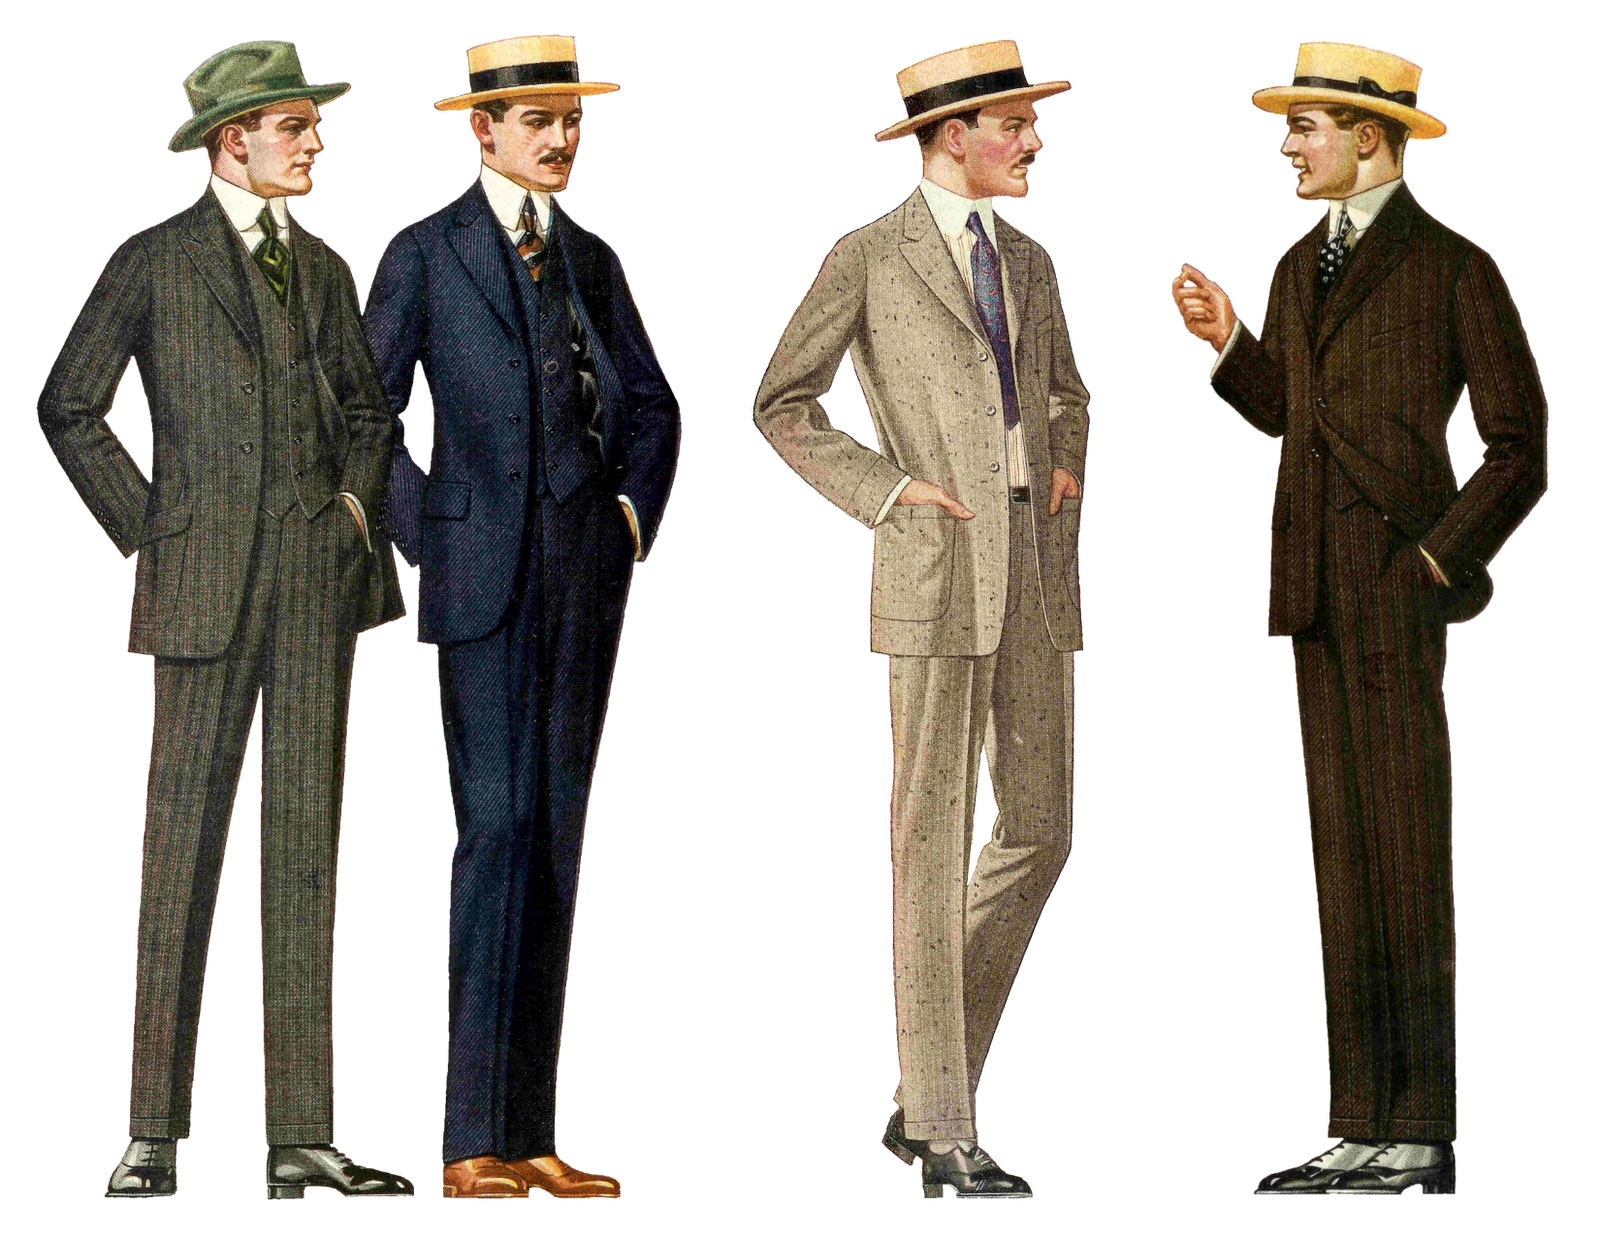 Men's Clothing Clipart - Clipart Suggest